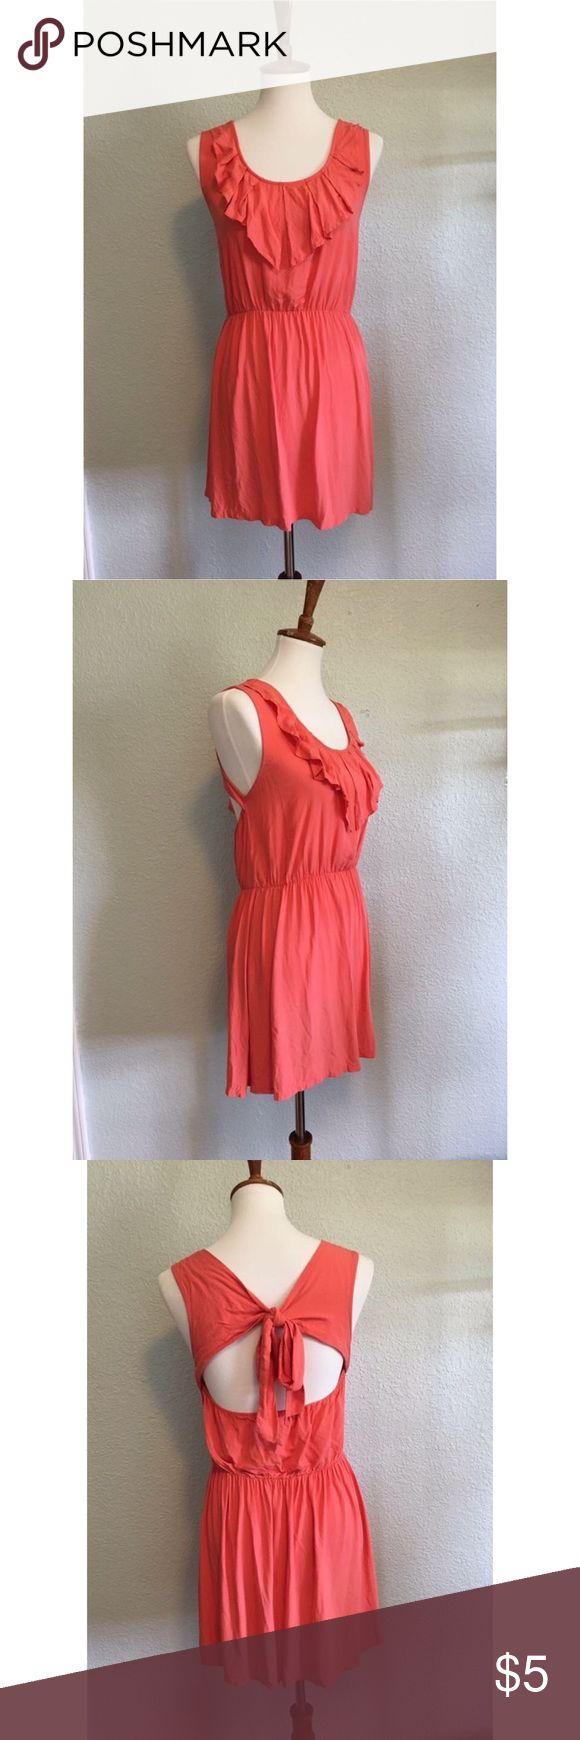 Summer Dress Price: 5$ Condition: Great! Brand: Margaret by be cool Size: M Material: 100% Rayon Sleeve: Sleeveless Color: Light coral/Salmon color Made in: China margaret by be cool Dresses Mini